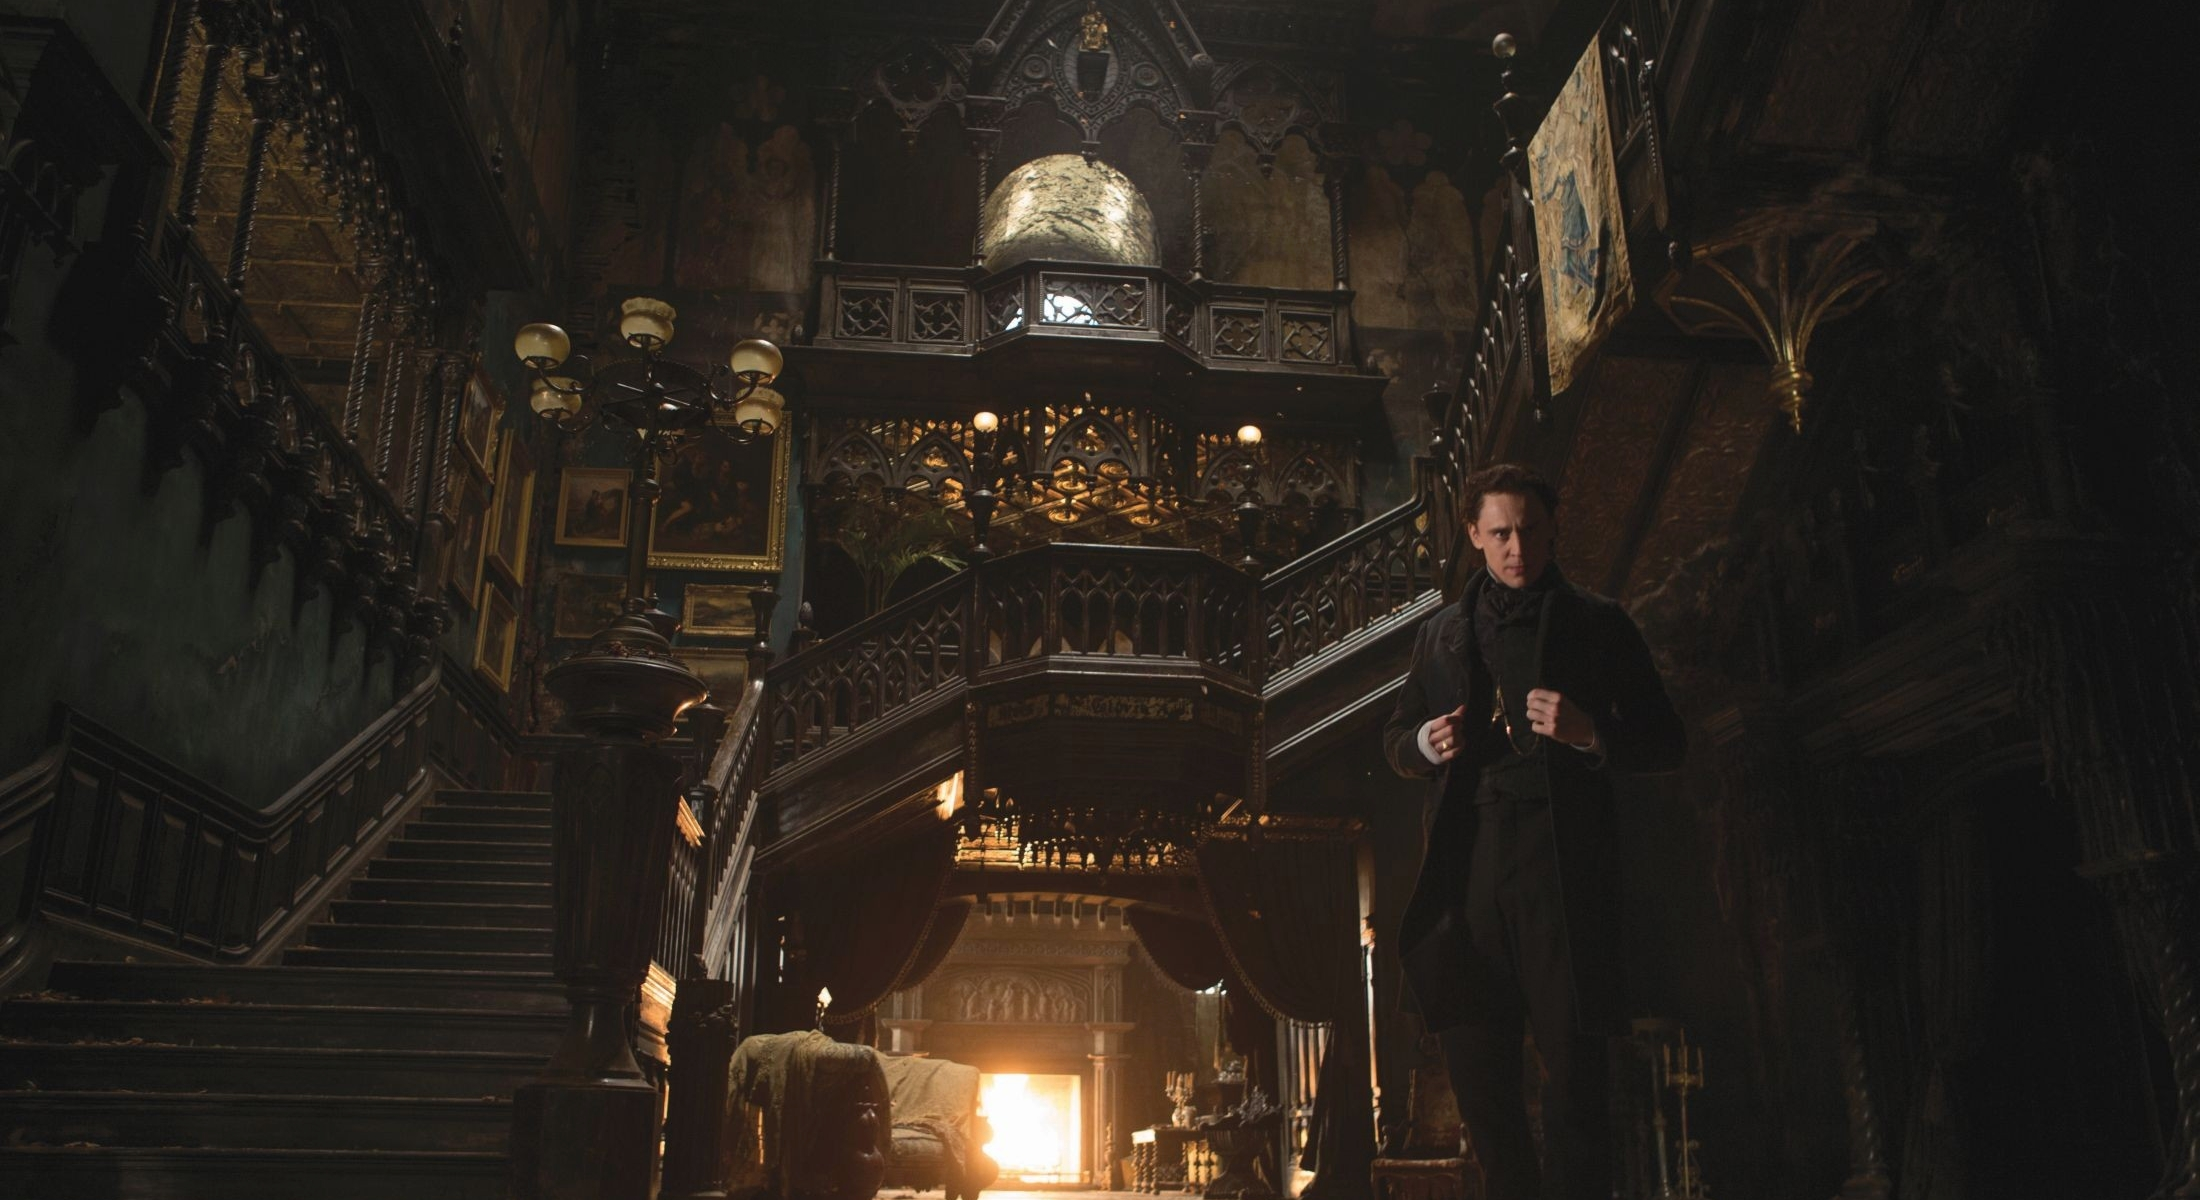 CINE CRÍTICA RÚM - Página 2 Tom-Hiddleston-stars-in-Crimson-Peak-